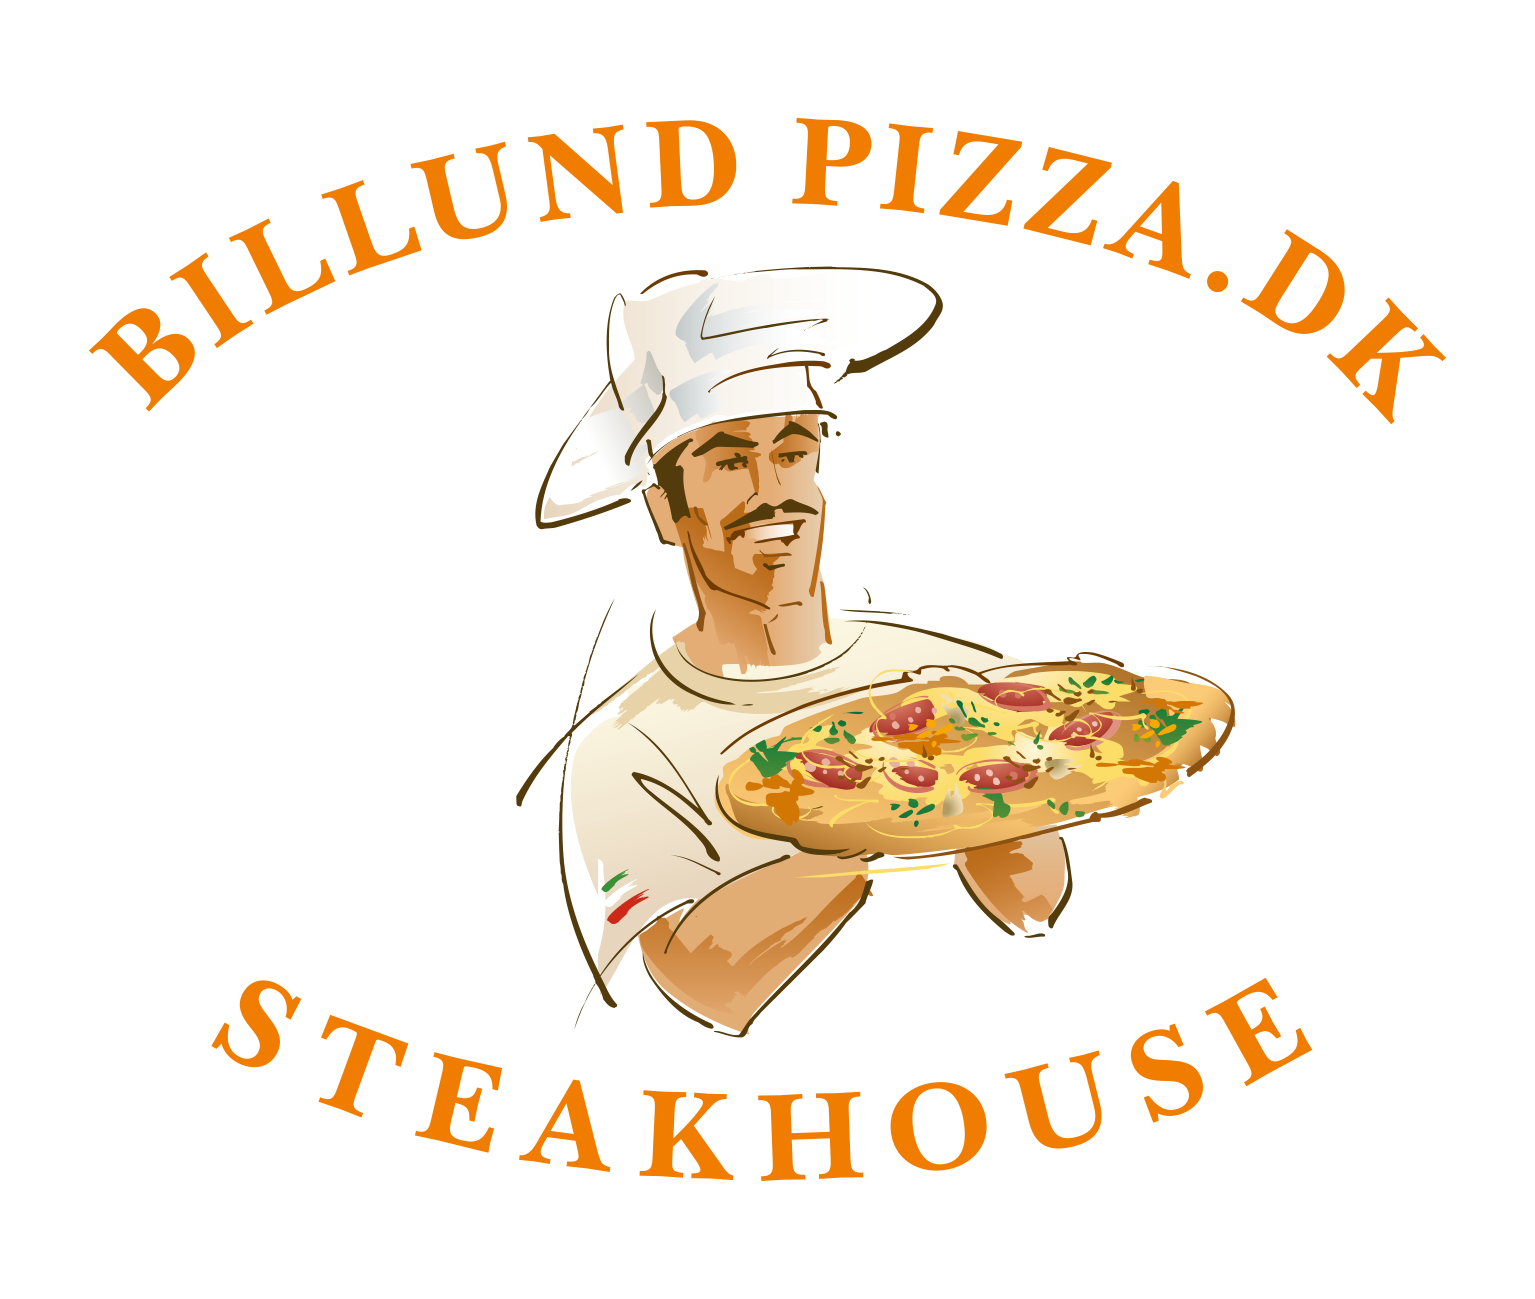 Billund Pizza & Steakhouse